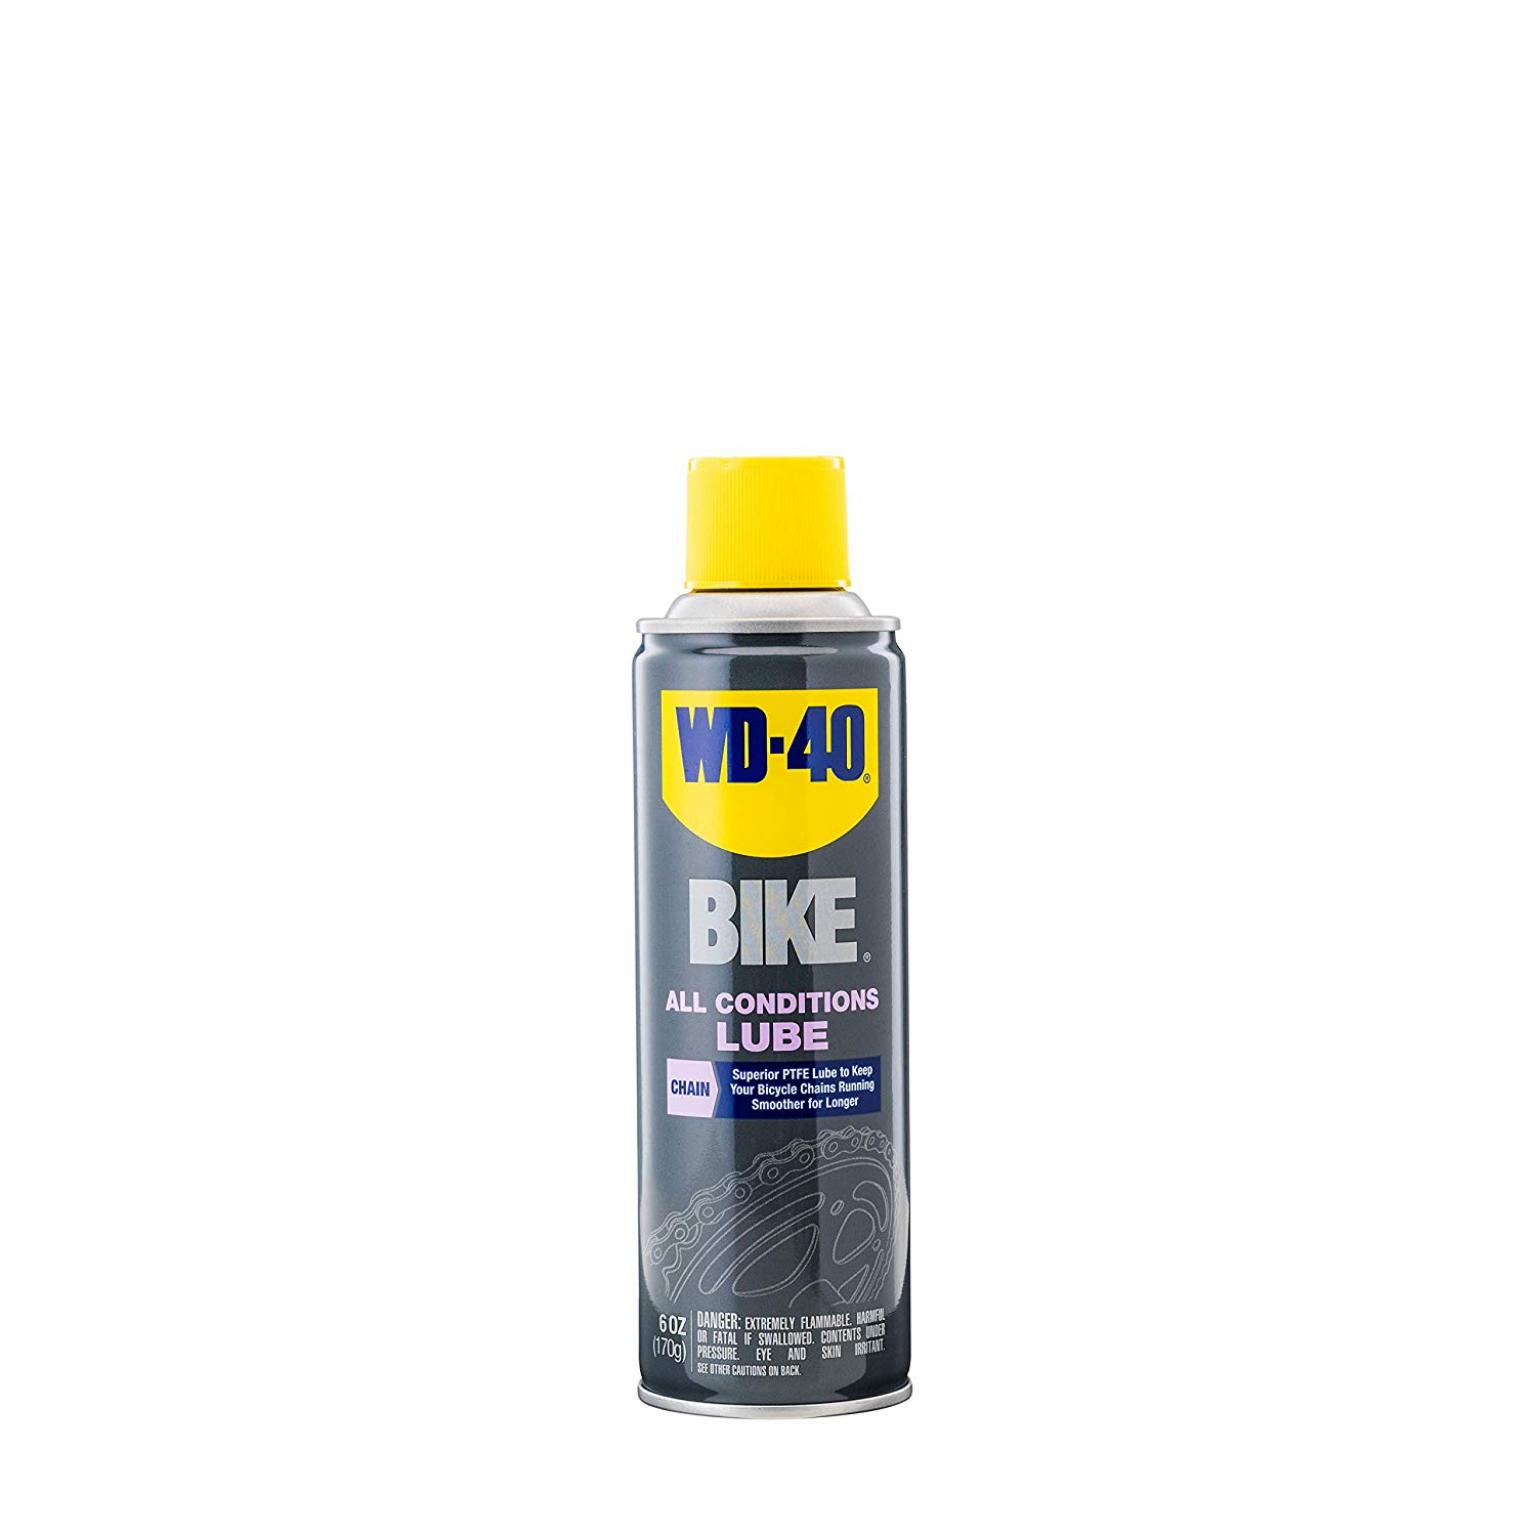 WD-40 Bike, All Conditions Lube